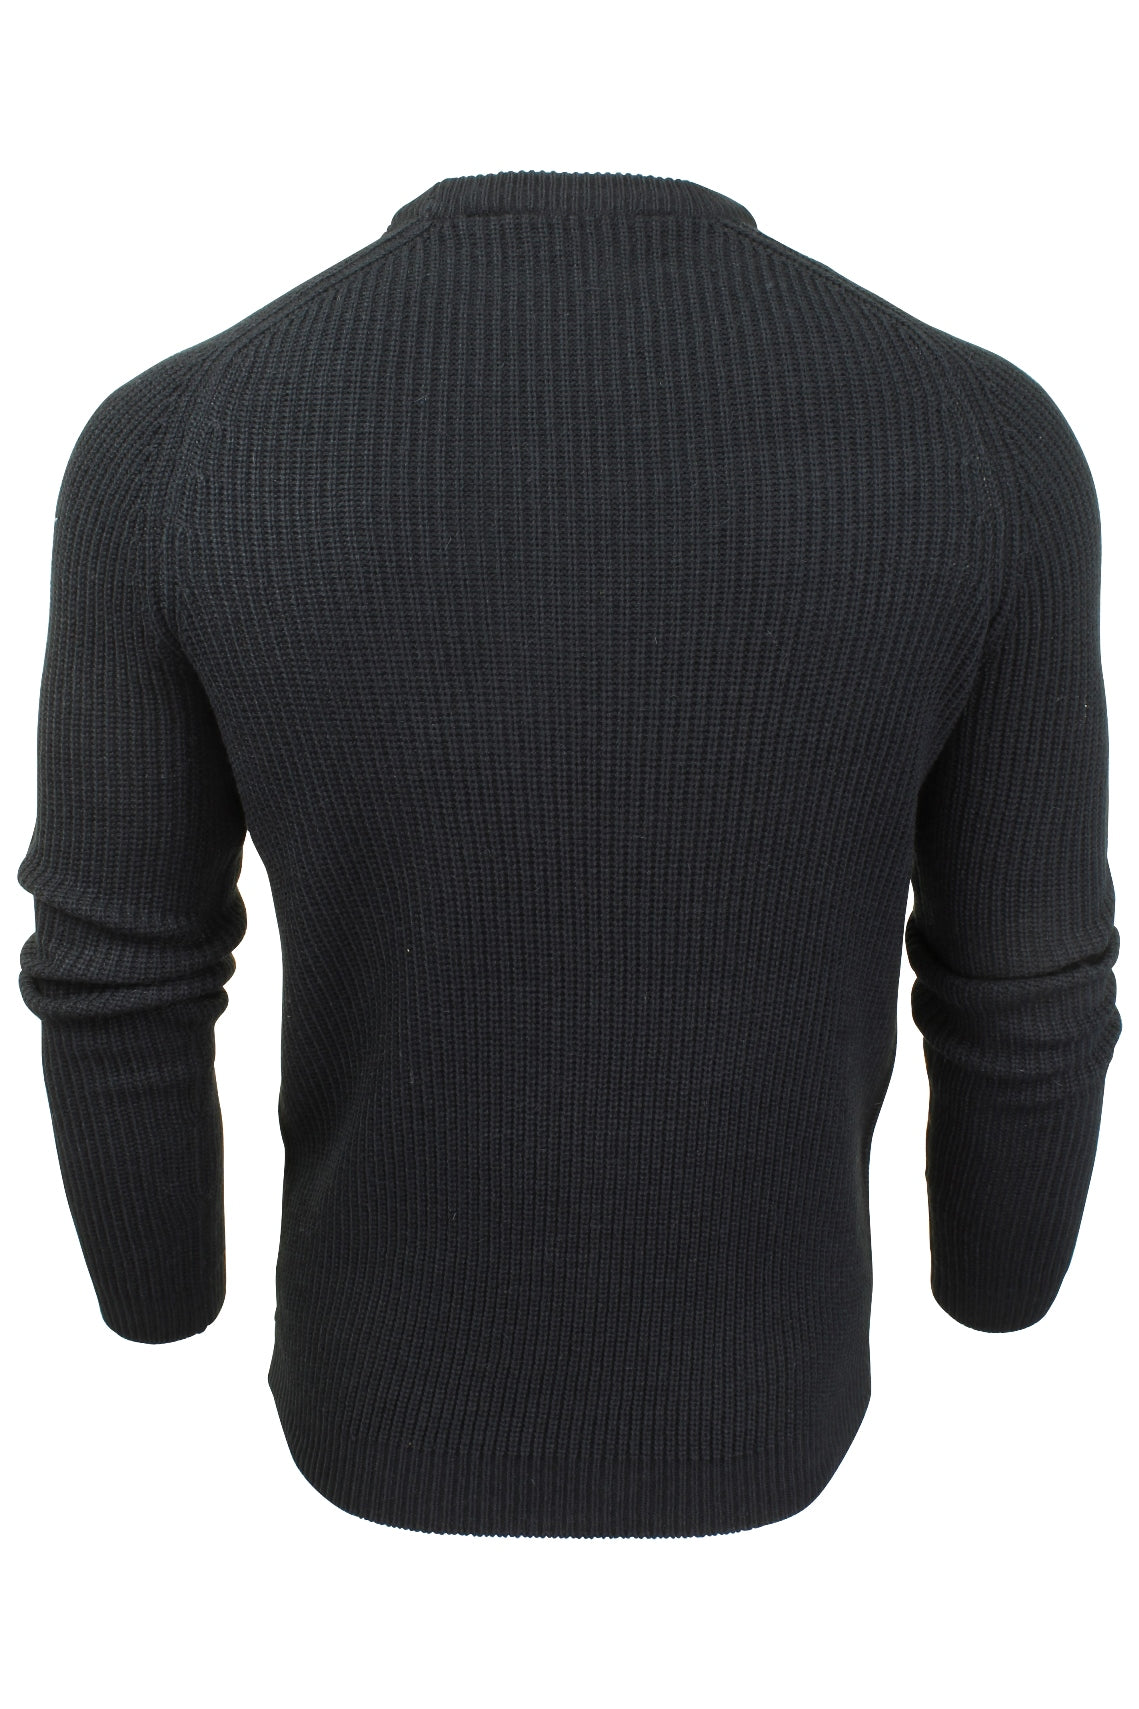 Mens Turtle Neck Knit Jumper by Dissident 'Mino' Wool Mix-3